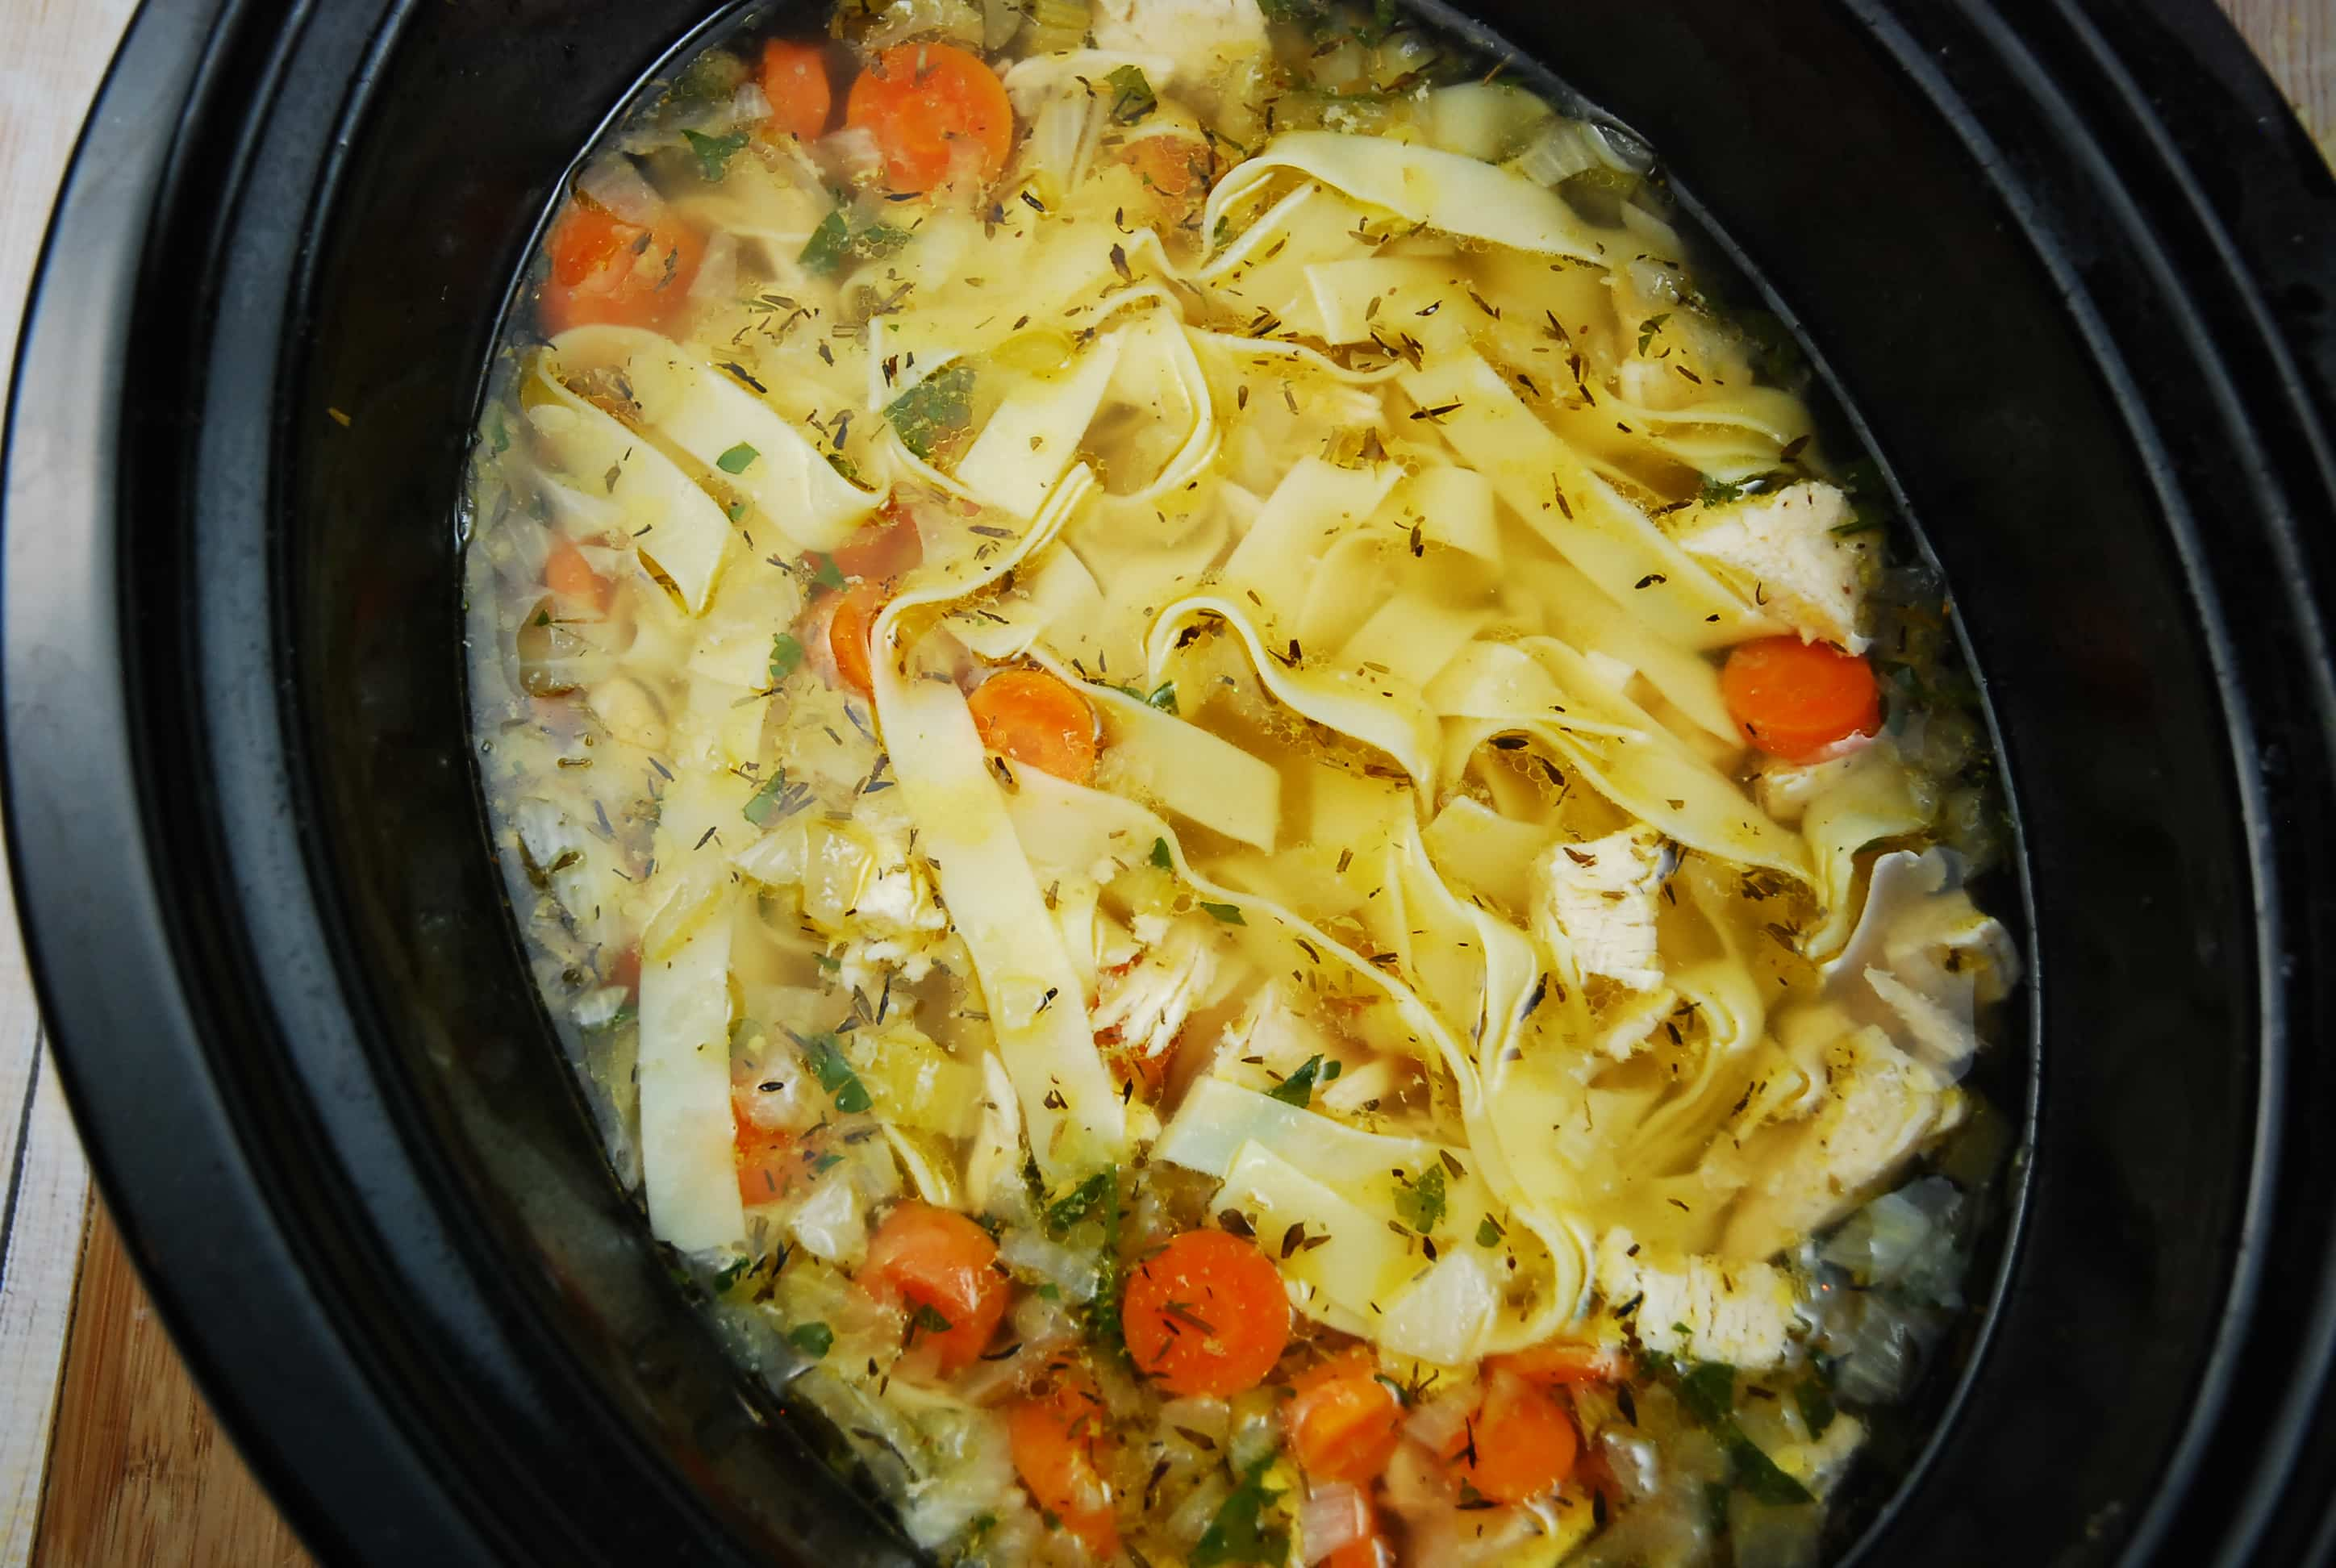 Crock Pot Chicken Noodle Soup Recipe 4 Points Laaloosh